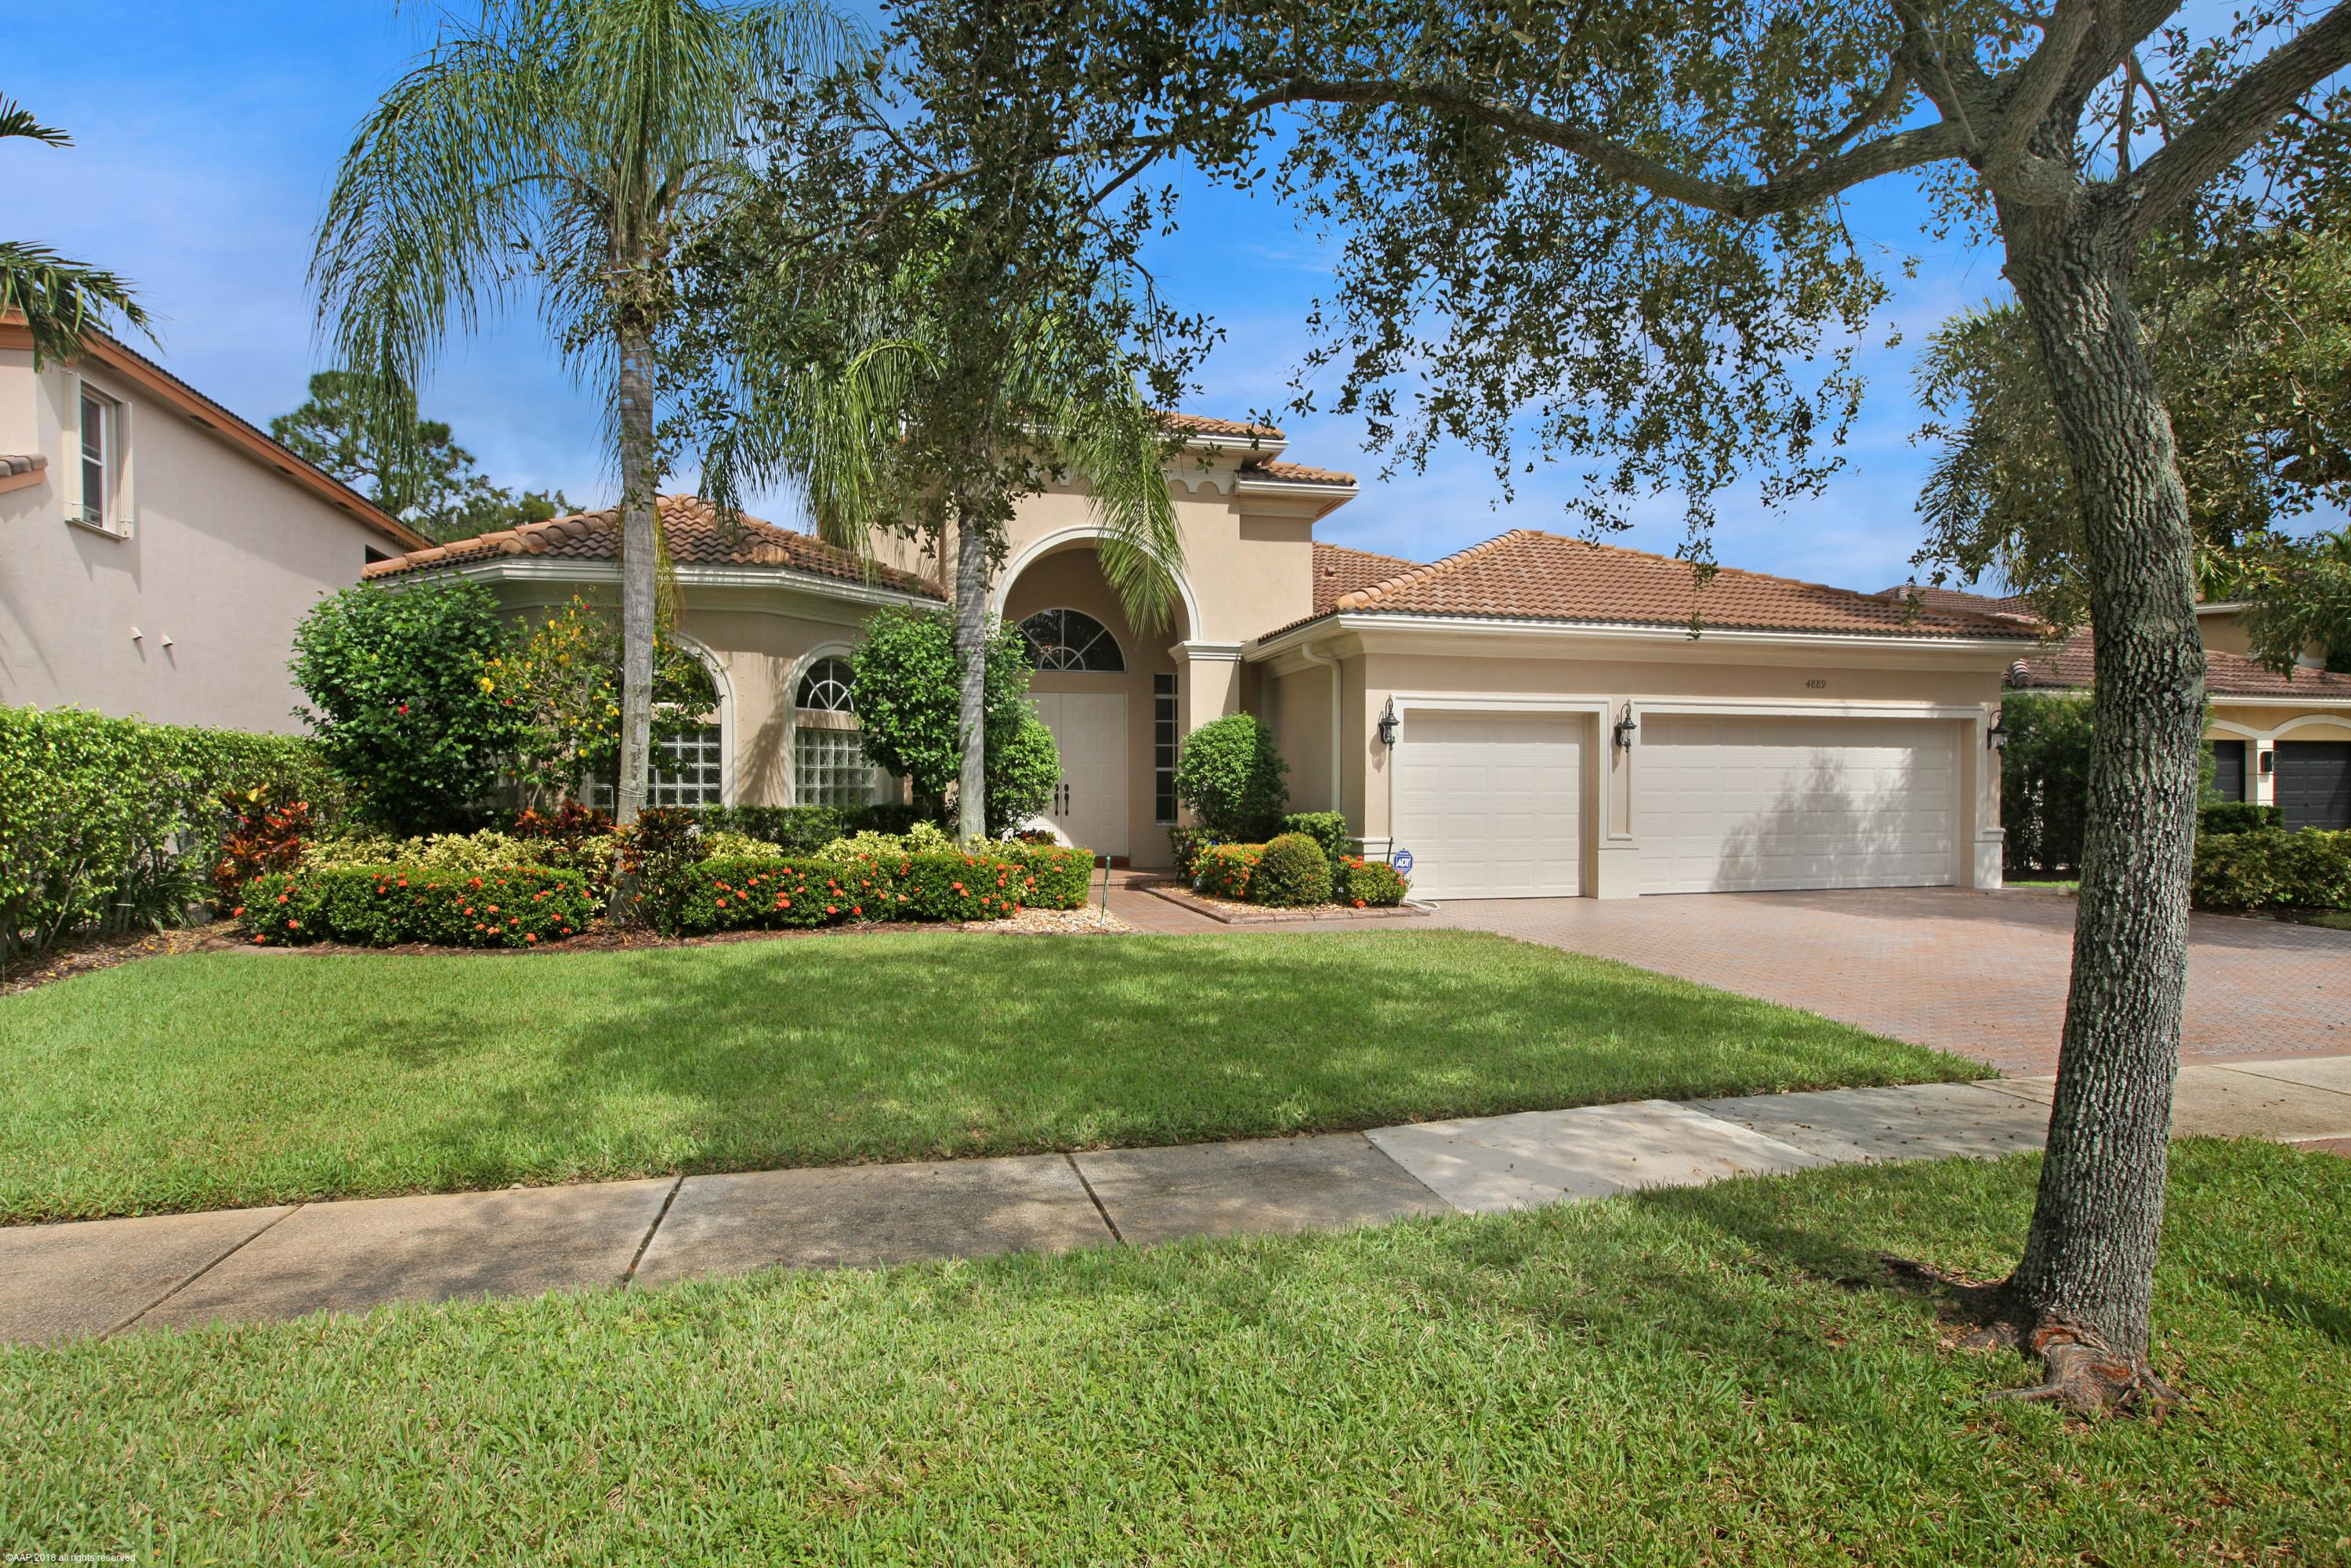 4889 Forest Dale Drive, Lake Worth, Florida 33449, 4 Bedrooms Bedrooms, ,3 BathroomsBathrooms,Single Family,For Sale,Countryside Estates,Forest Dale,RX-10470708